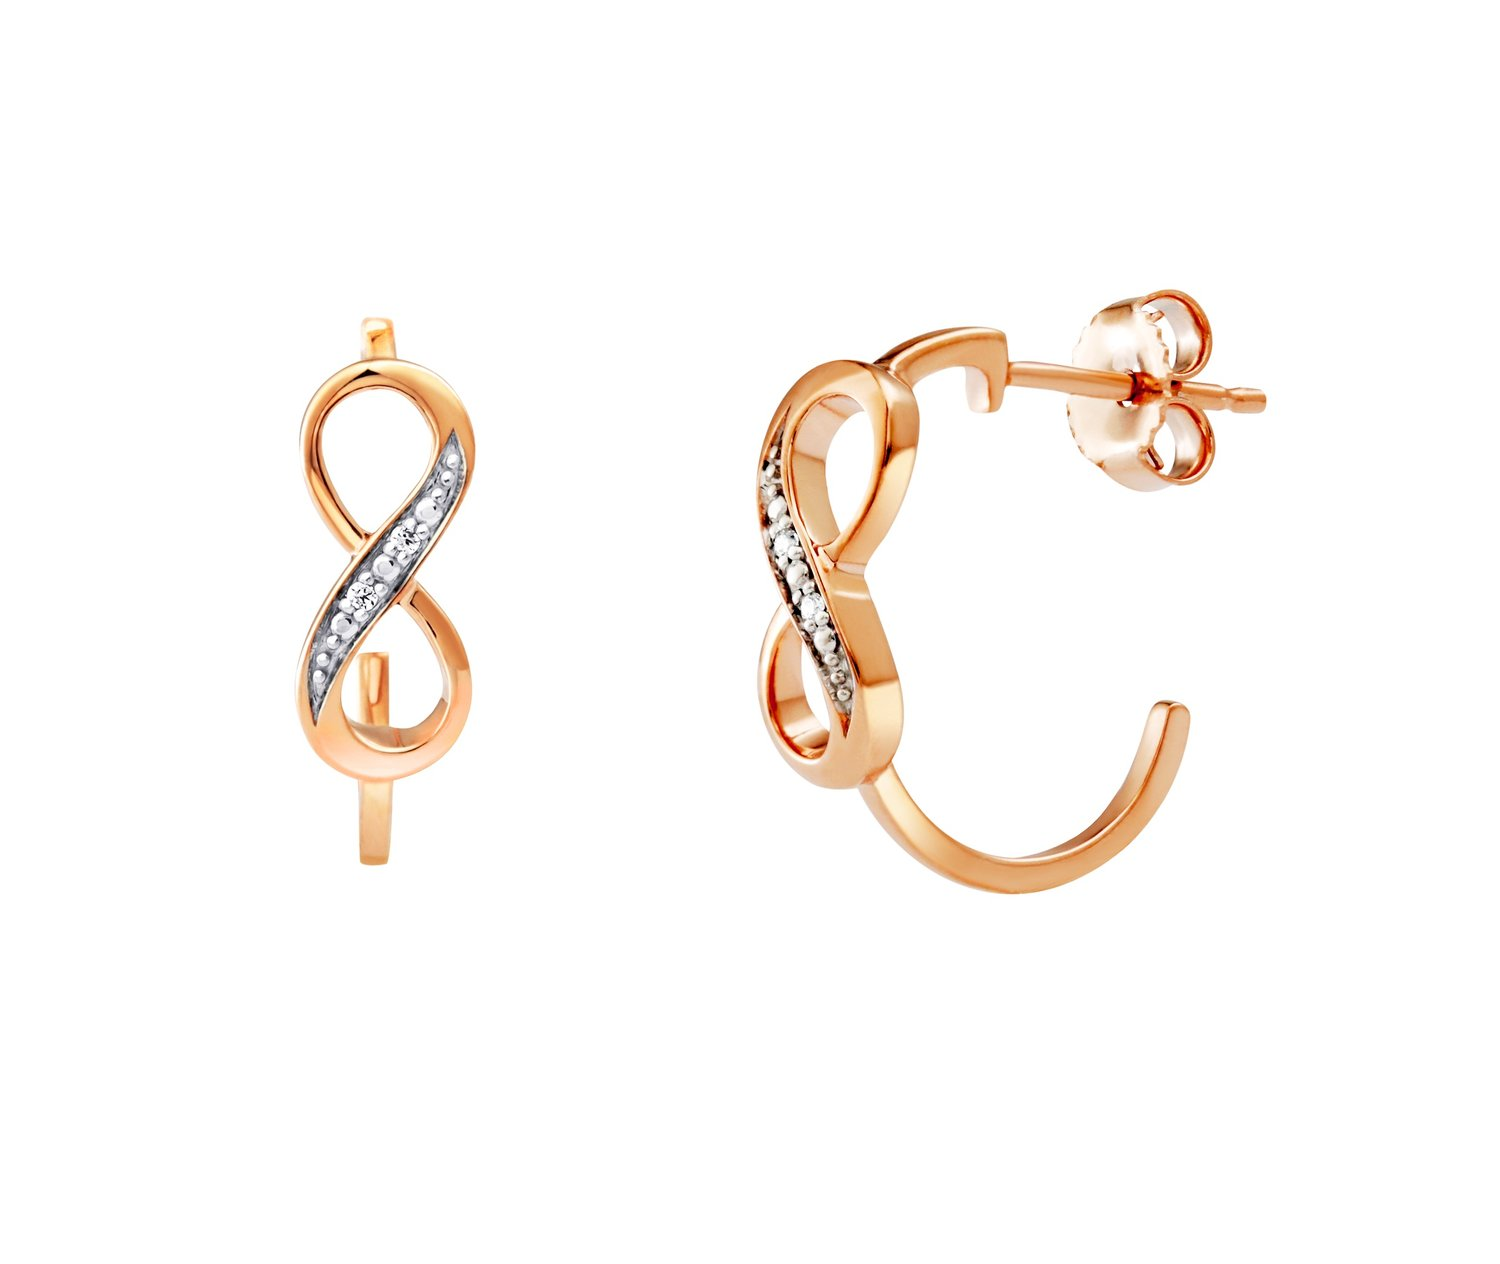 326c0a2c0 Love It Collection 9ct Gold Diamond Infinity Hoop Earring | Michael Frank  Jewellers